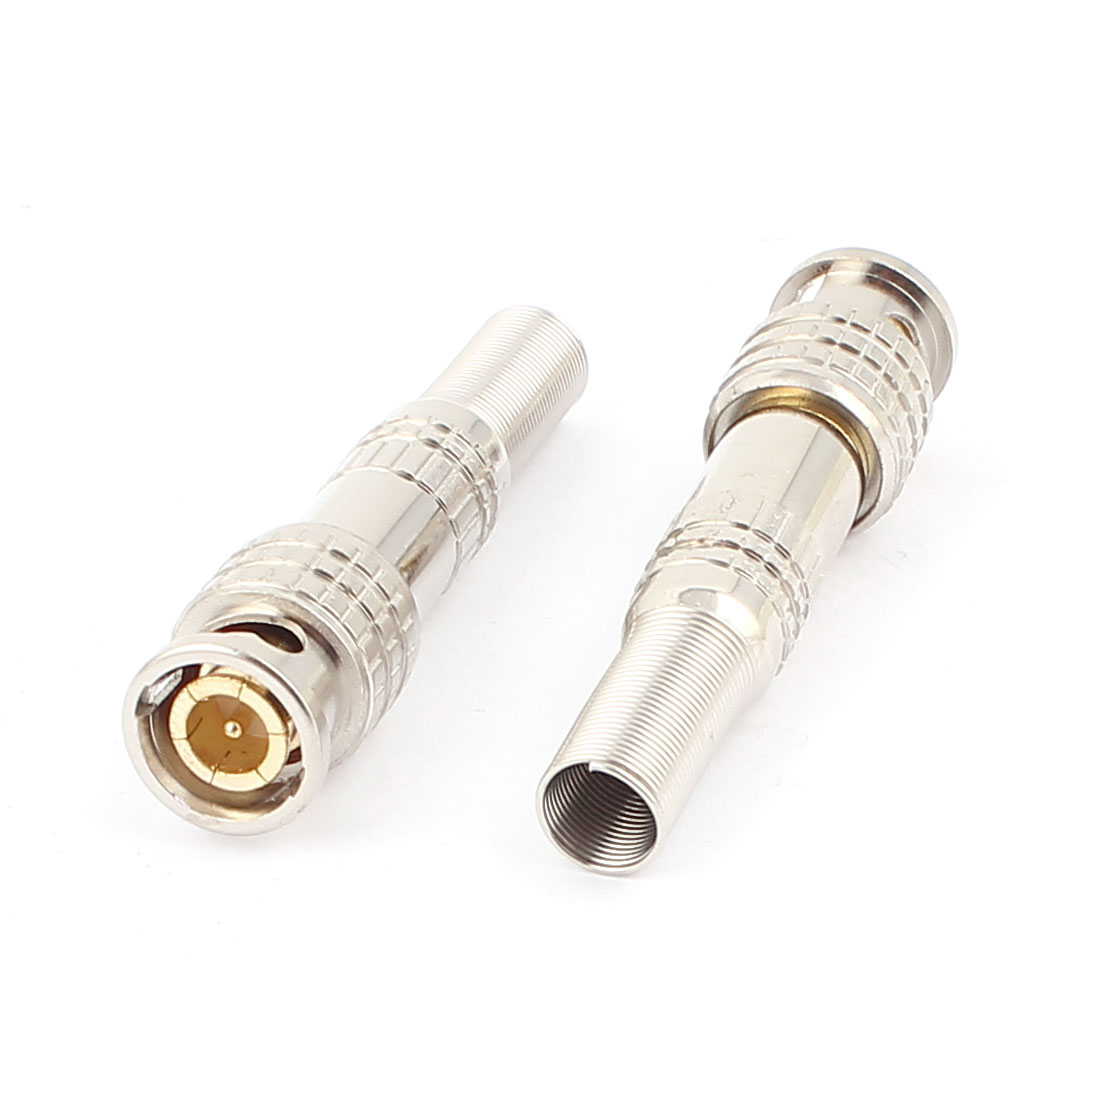 2pcs Spring End Welding Video Cable RF Coaxial BNC Male Connector Plug Adapter